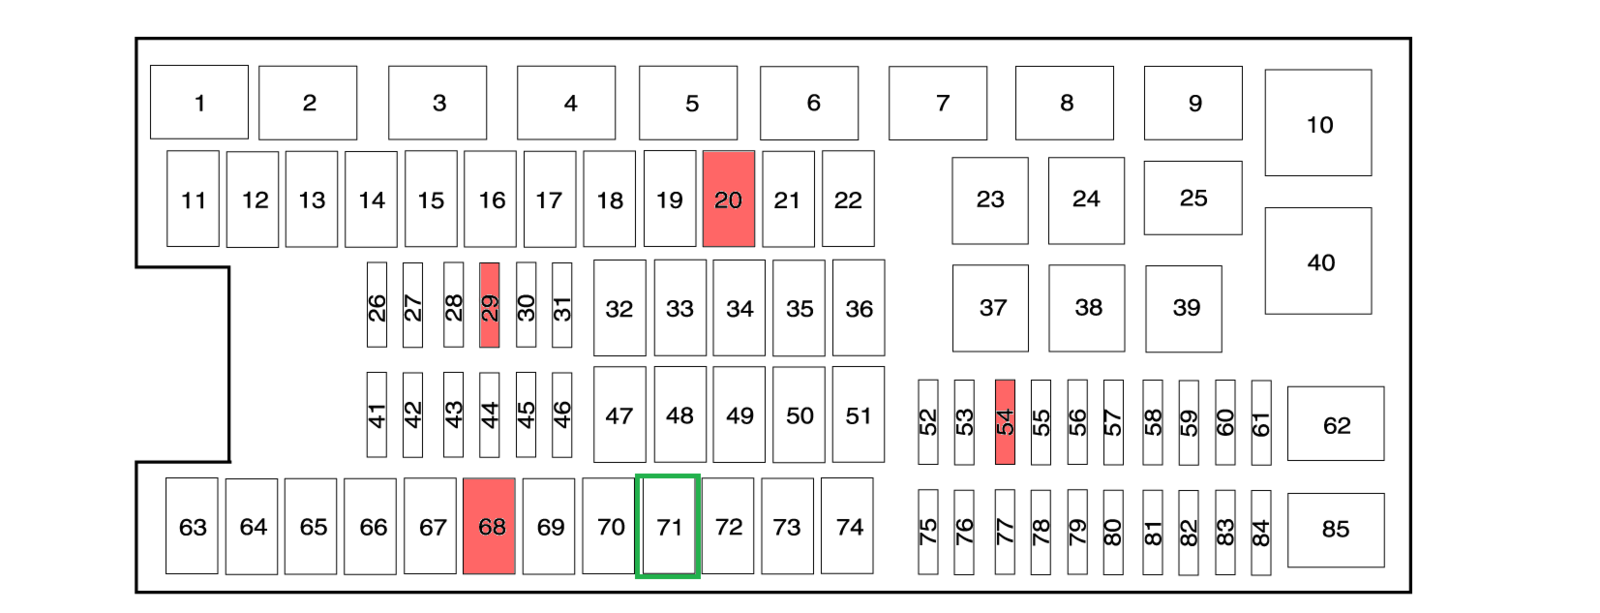 2004 Ford F250 Super Duty Fuse Box Diagram on ford f450 radio wiring diagram